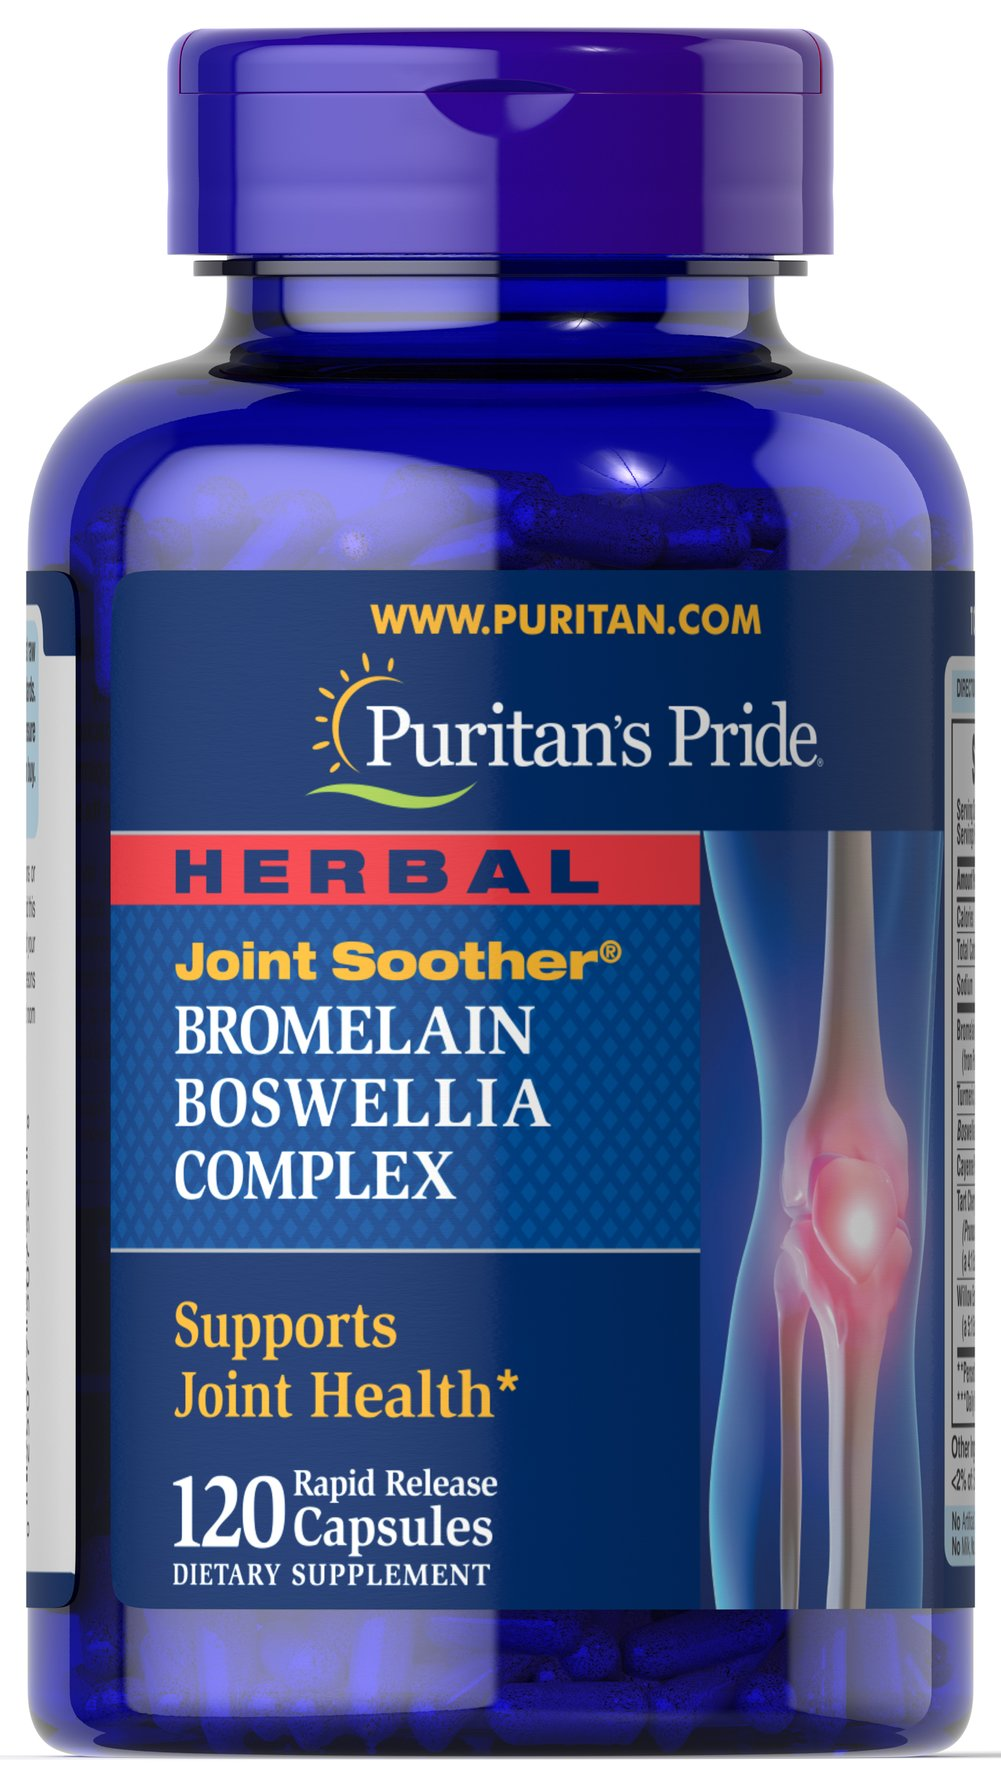 Herbal Joint Soother® Bromelain Boswellia Complex with Turmeric  120 Capsules